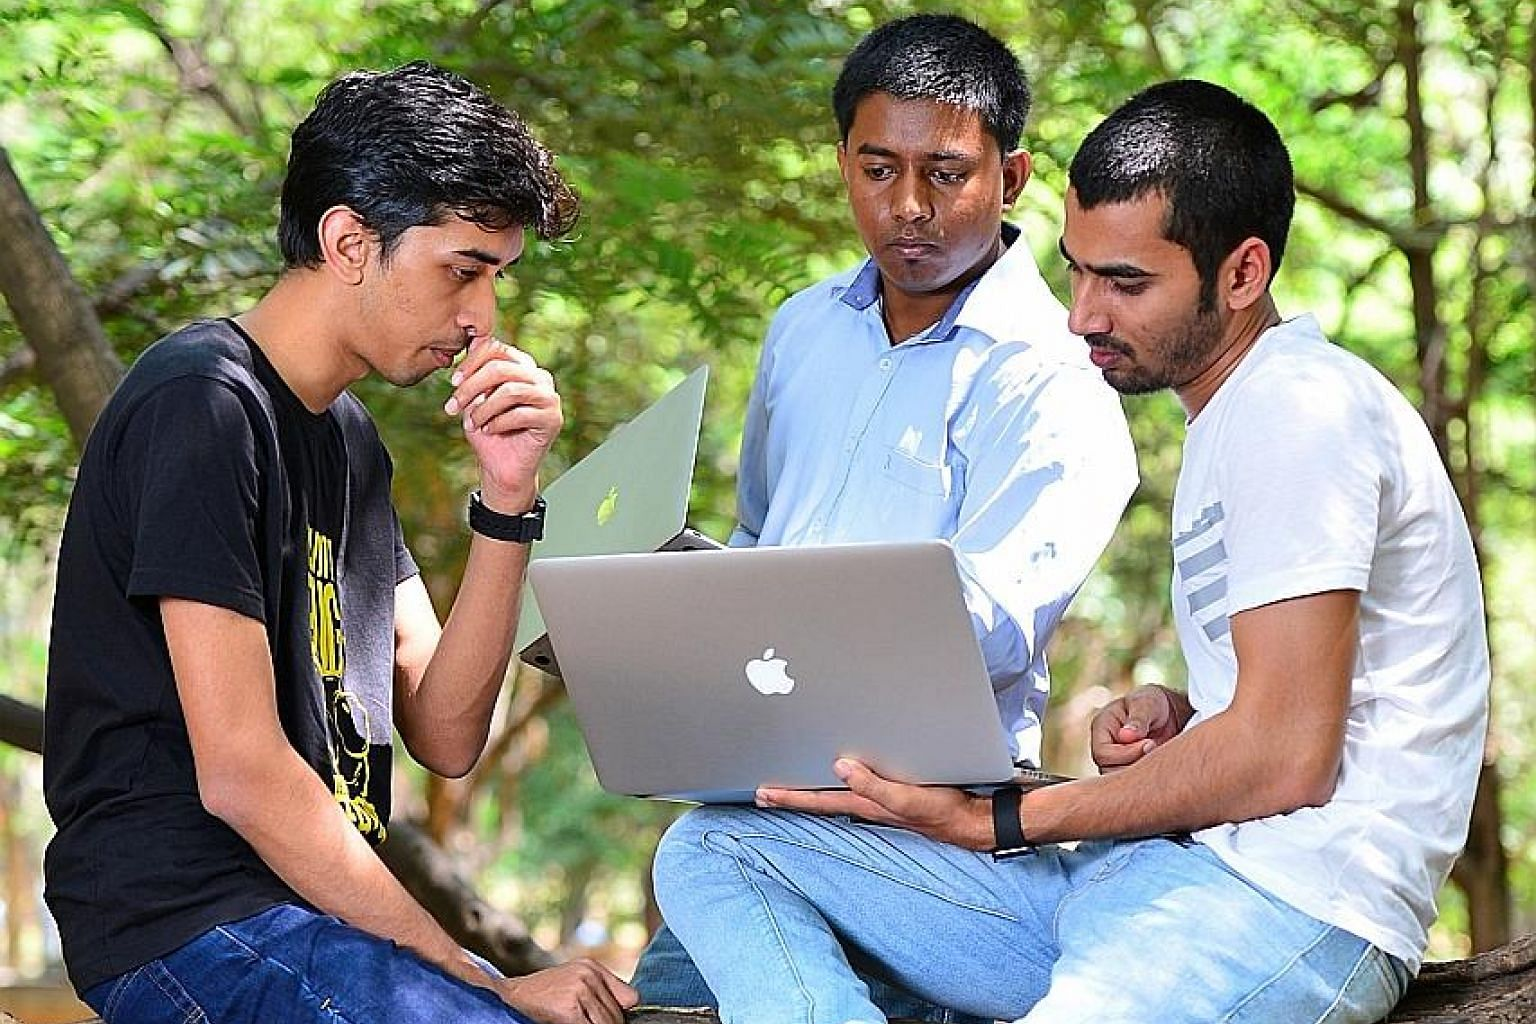 Mr Anand Prakash (right), who runs cyber security firm AppSecure India, meeting fellow ethical hackers at a public park in Bangalore recently. India's army of ethical hackers earn millions protecting foreign corporations and global tech giants from c